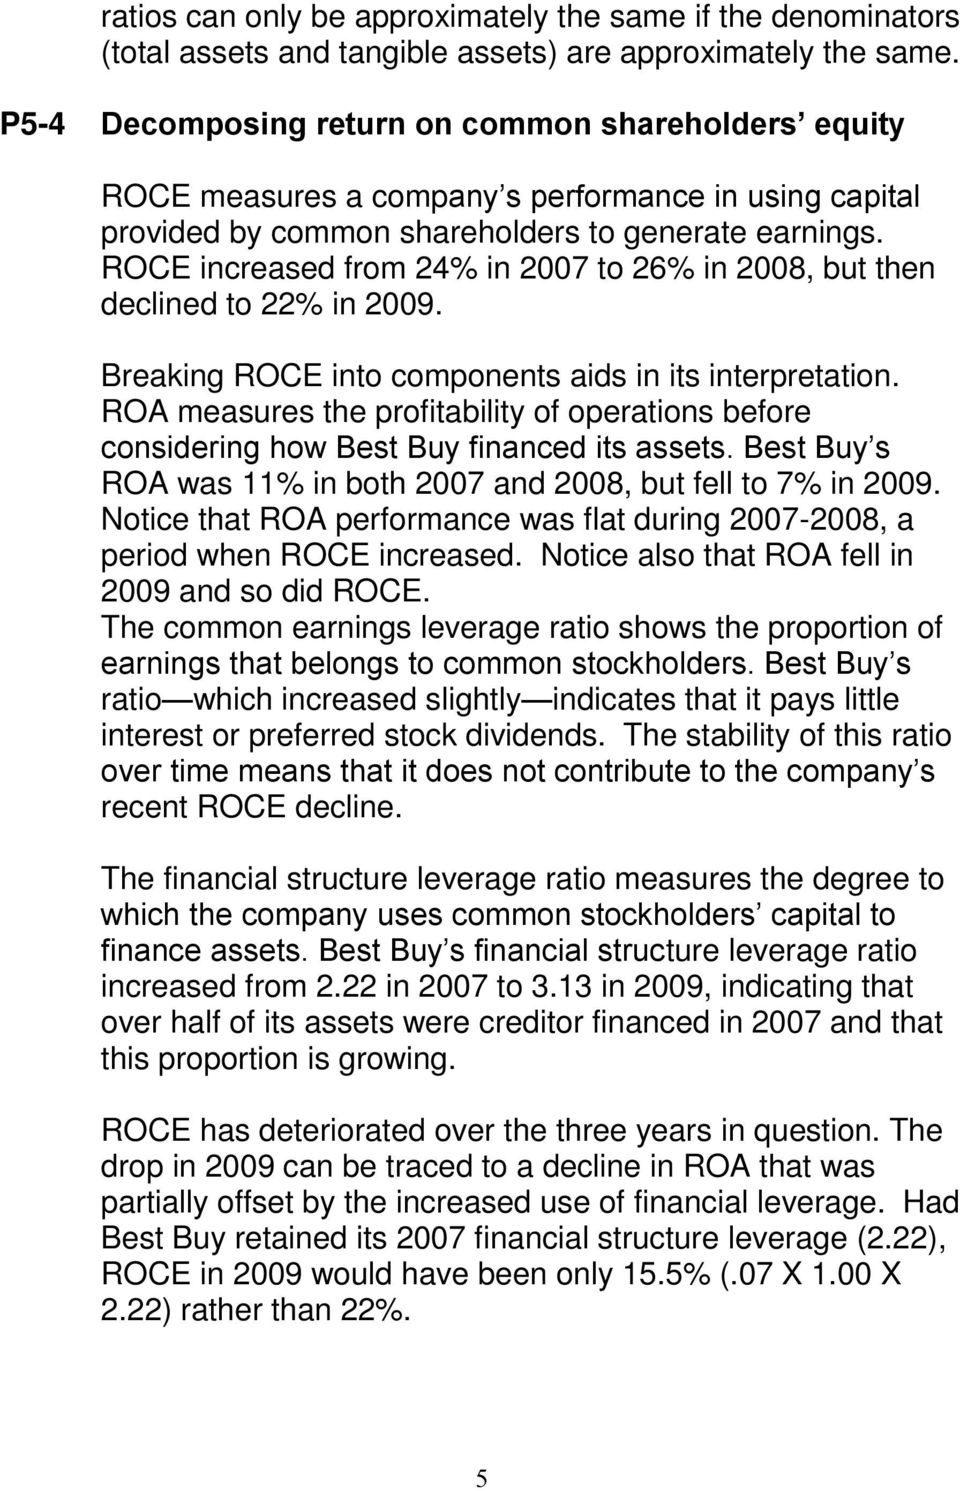 ROCE increased from 24% in 2007 to 26% in 2008, but then declined to 22% in 2009. Breaking ROCE into components aids in its interpretation.